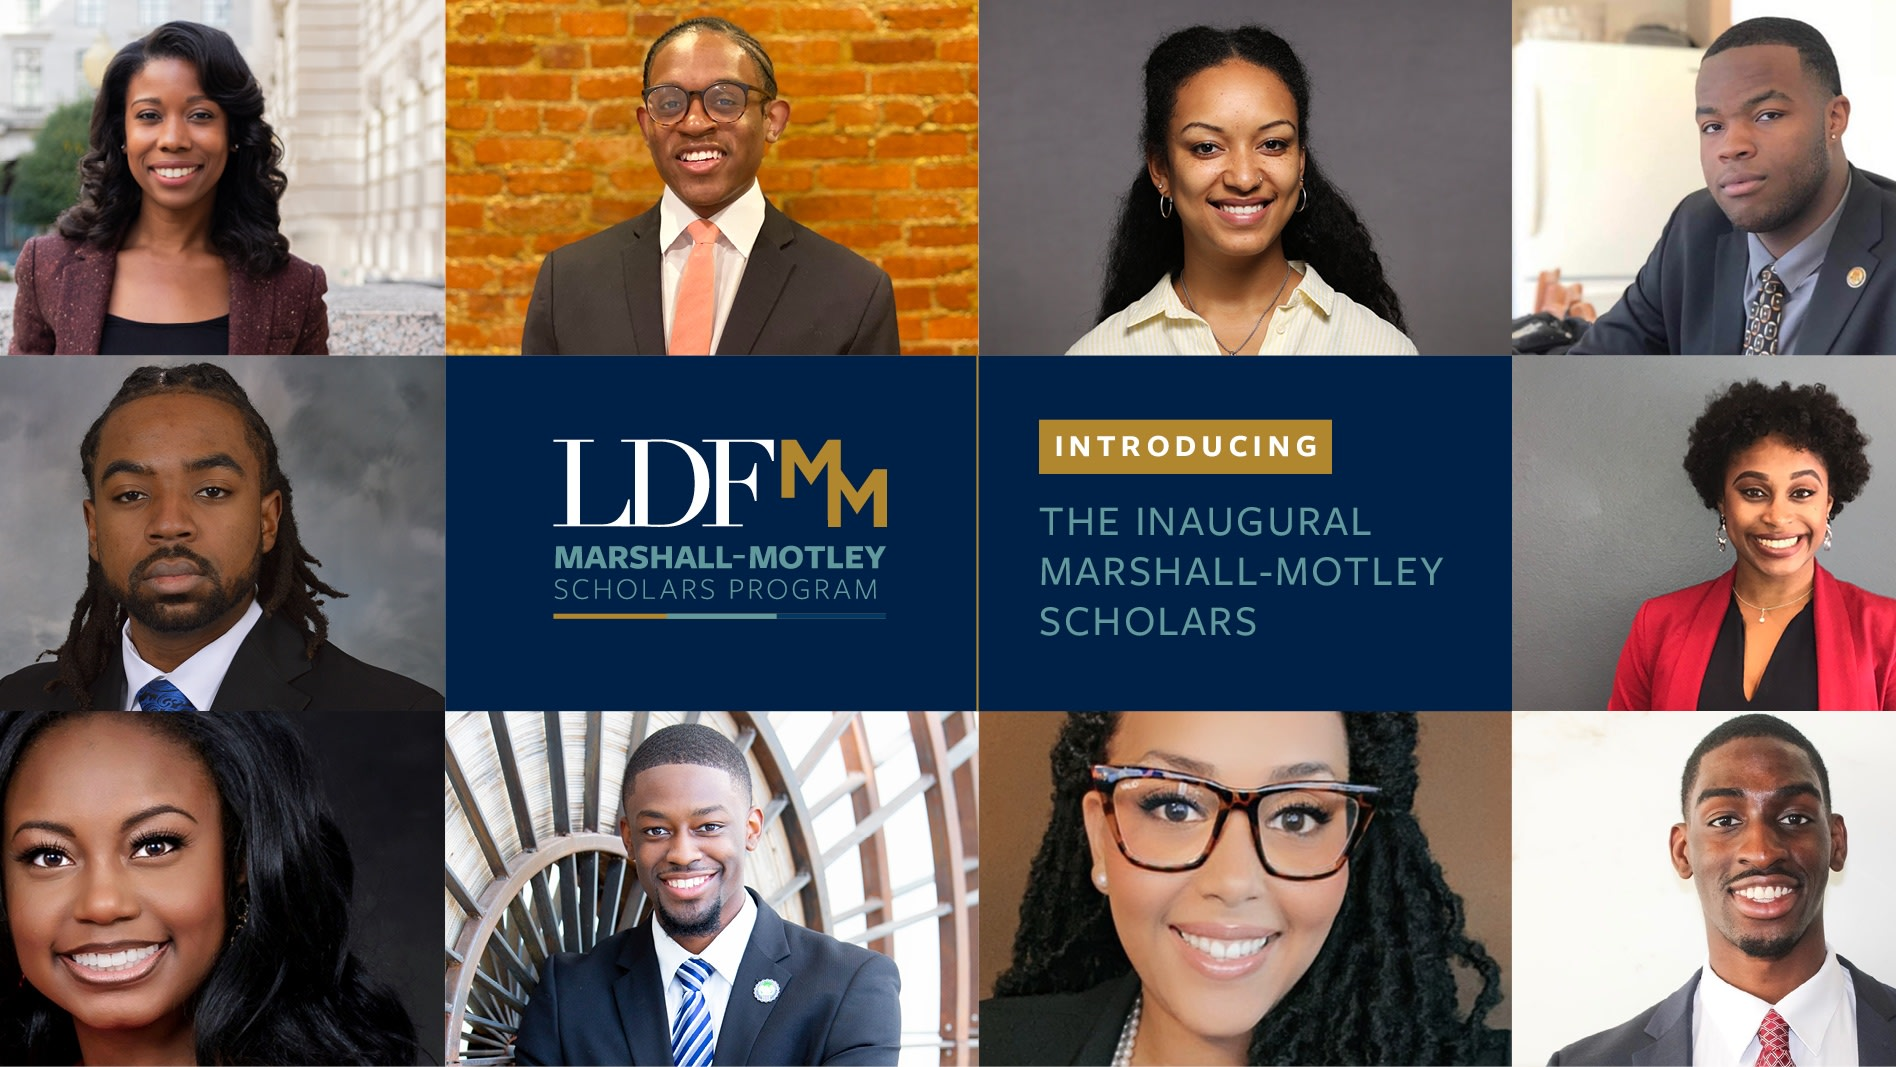 NAACP Legal Defense Fund Announces Inaugural Cohort For $40M Scholarship Program For Upcoming Civil Rights Lawyers